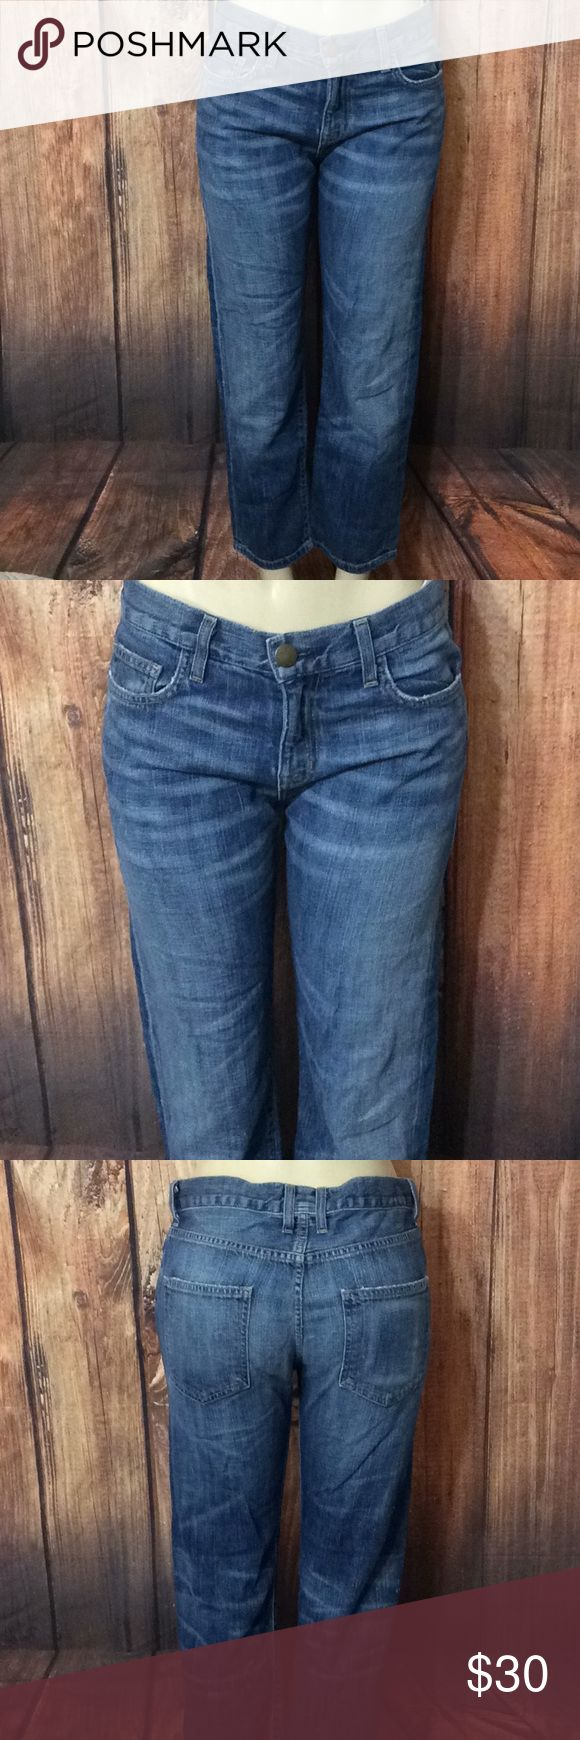 """CURRENT/ELLIOTT The Boyfriend easy love sz 26x26 Measurements Laying Flat Apr. Waist  16"""" Run big please See pic👆 Hips  20"""" Rise  10.5"""" Inseam  26 Leg Opening  7.5""""  Label sz 26""""   Hardly used but still in good shape   Check Out My Other Items   Thank You For Looking Current/Elliott Jeans Boyfriend"""